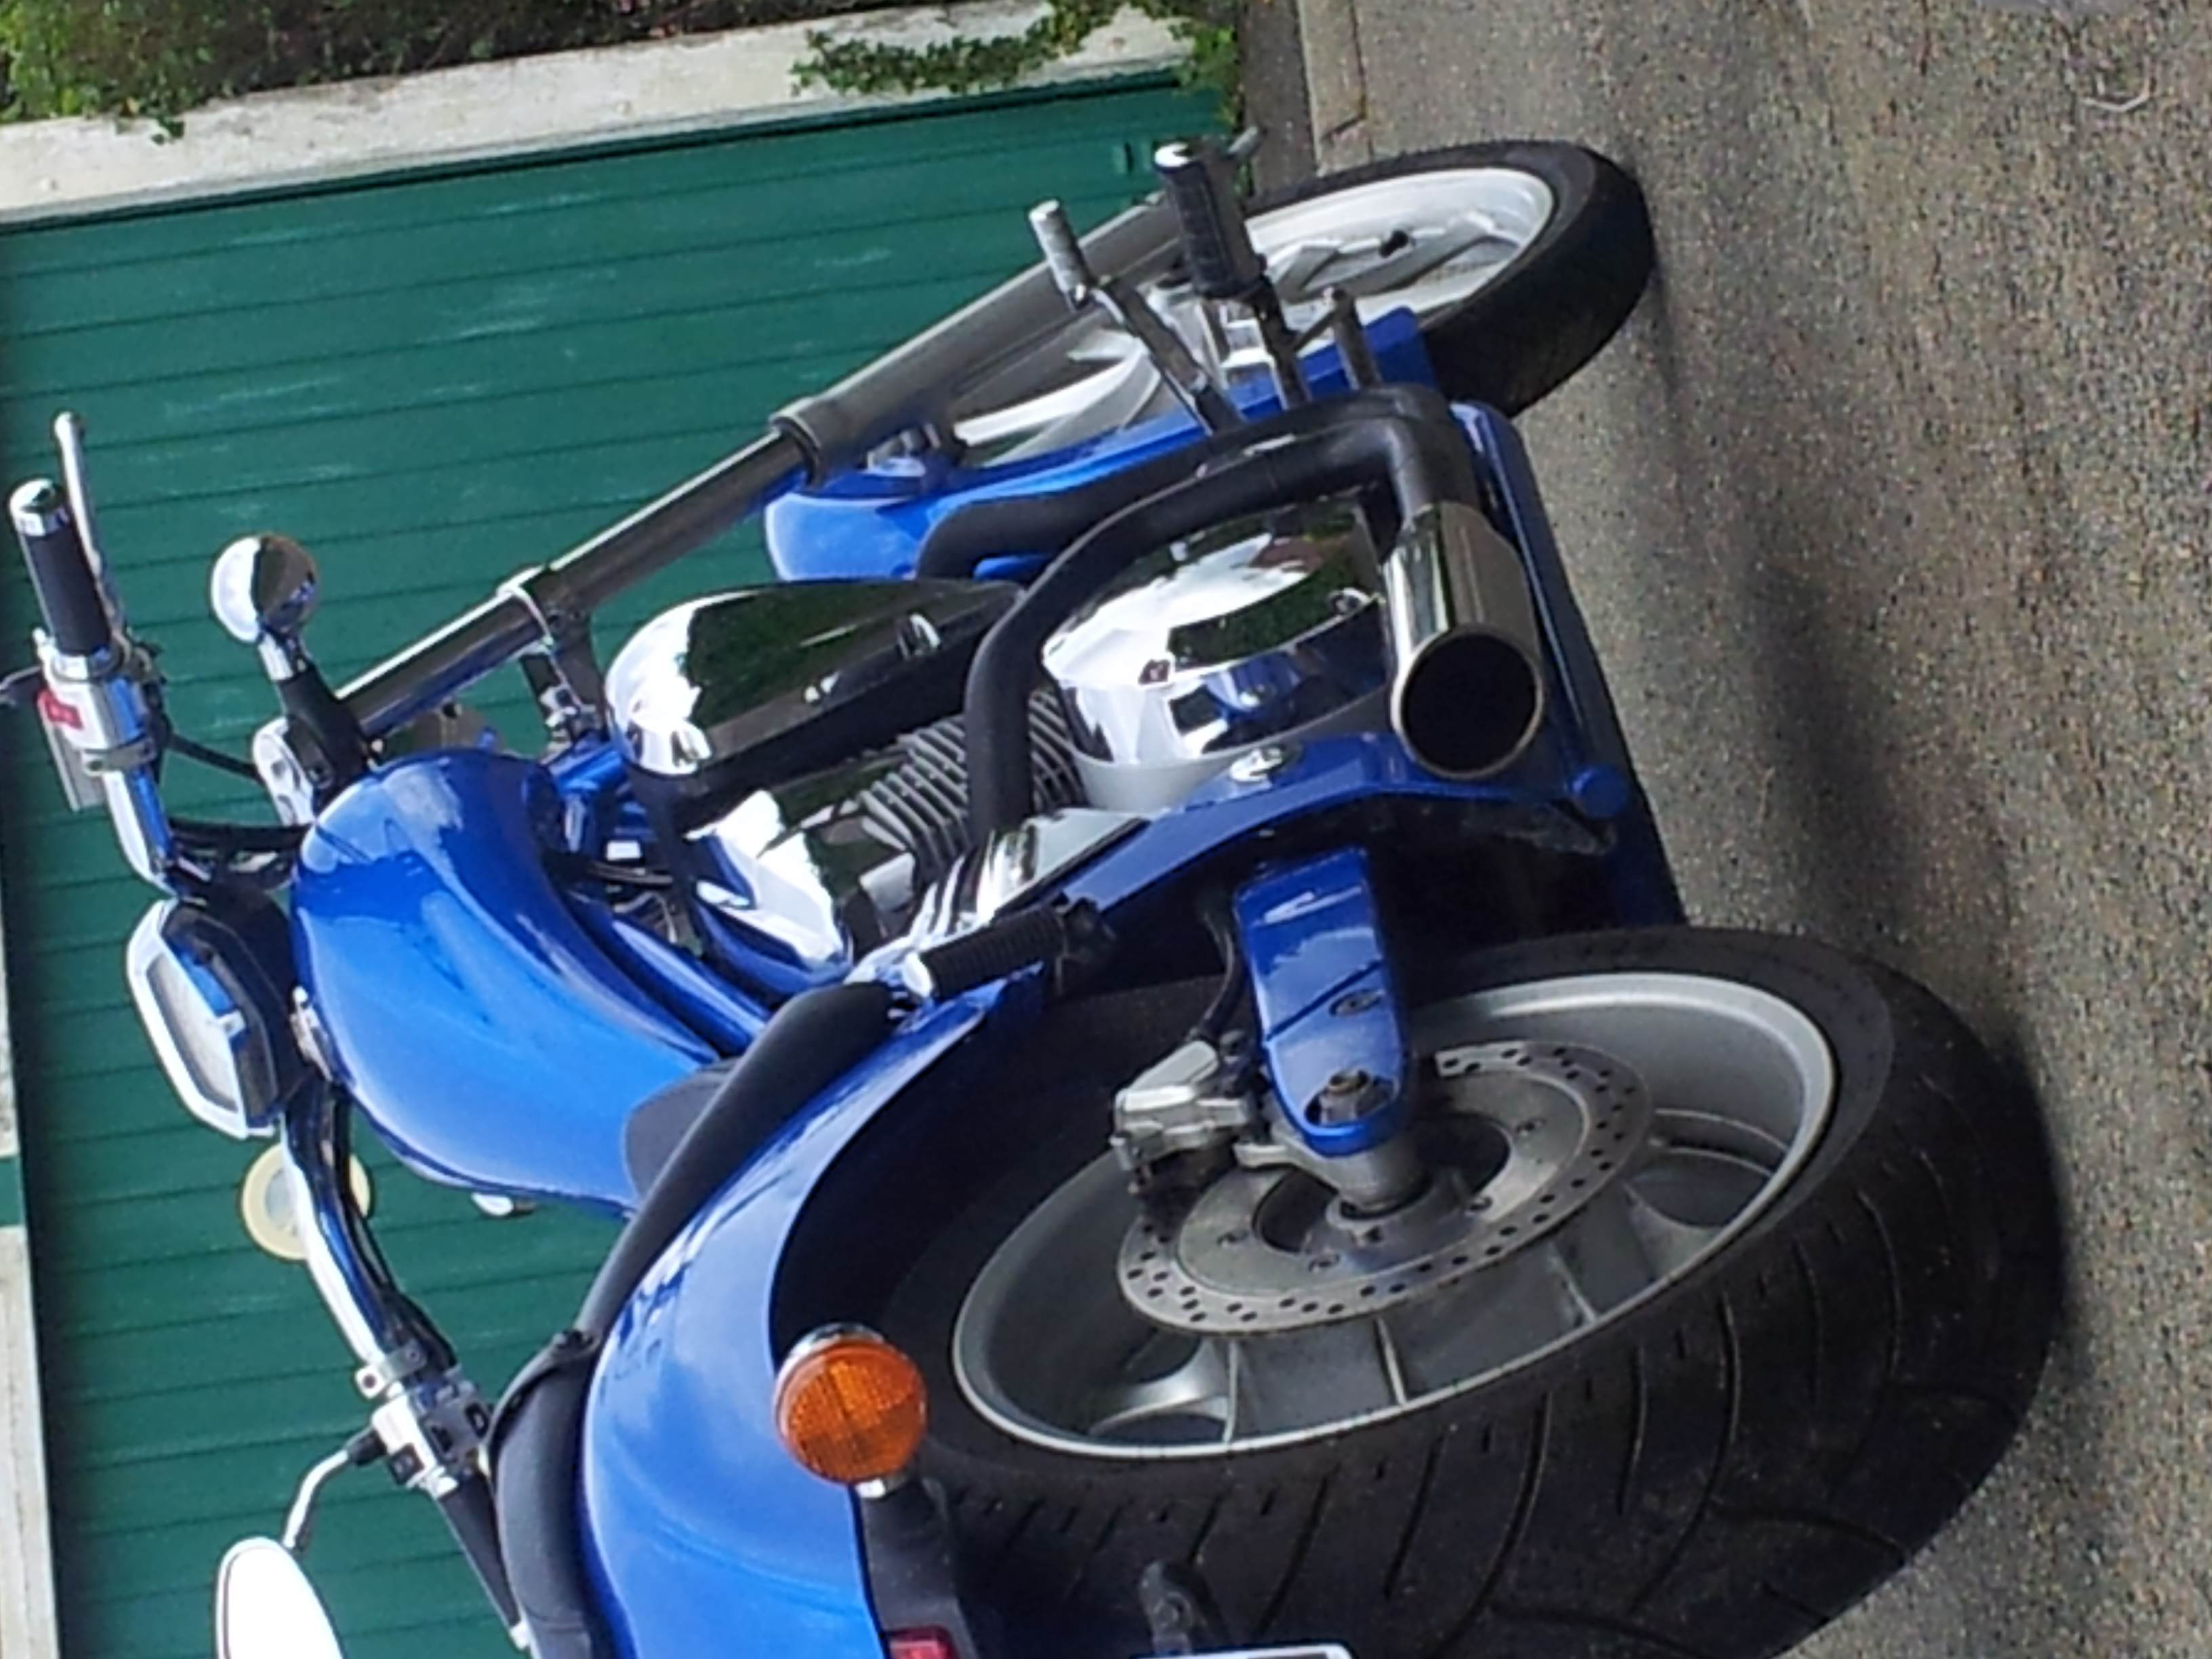 Honda VT1300 Exhaust